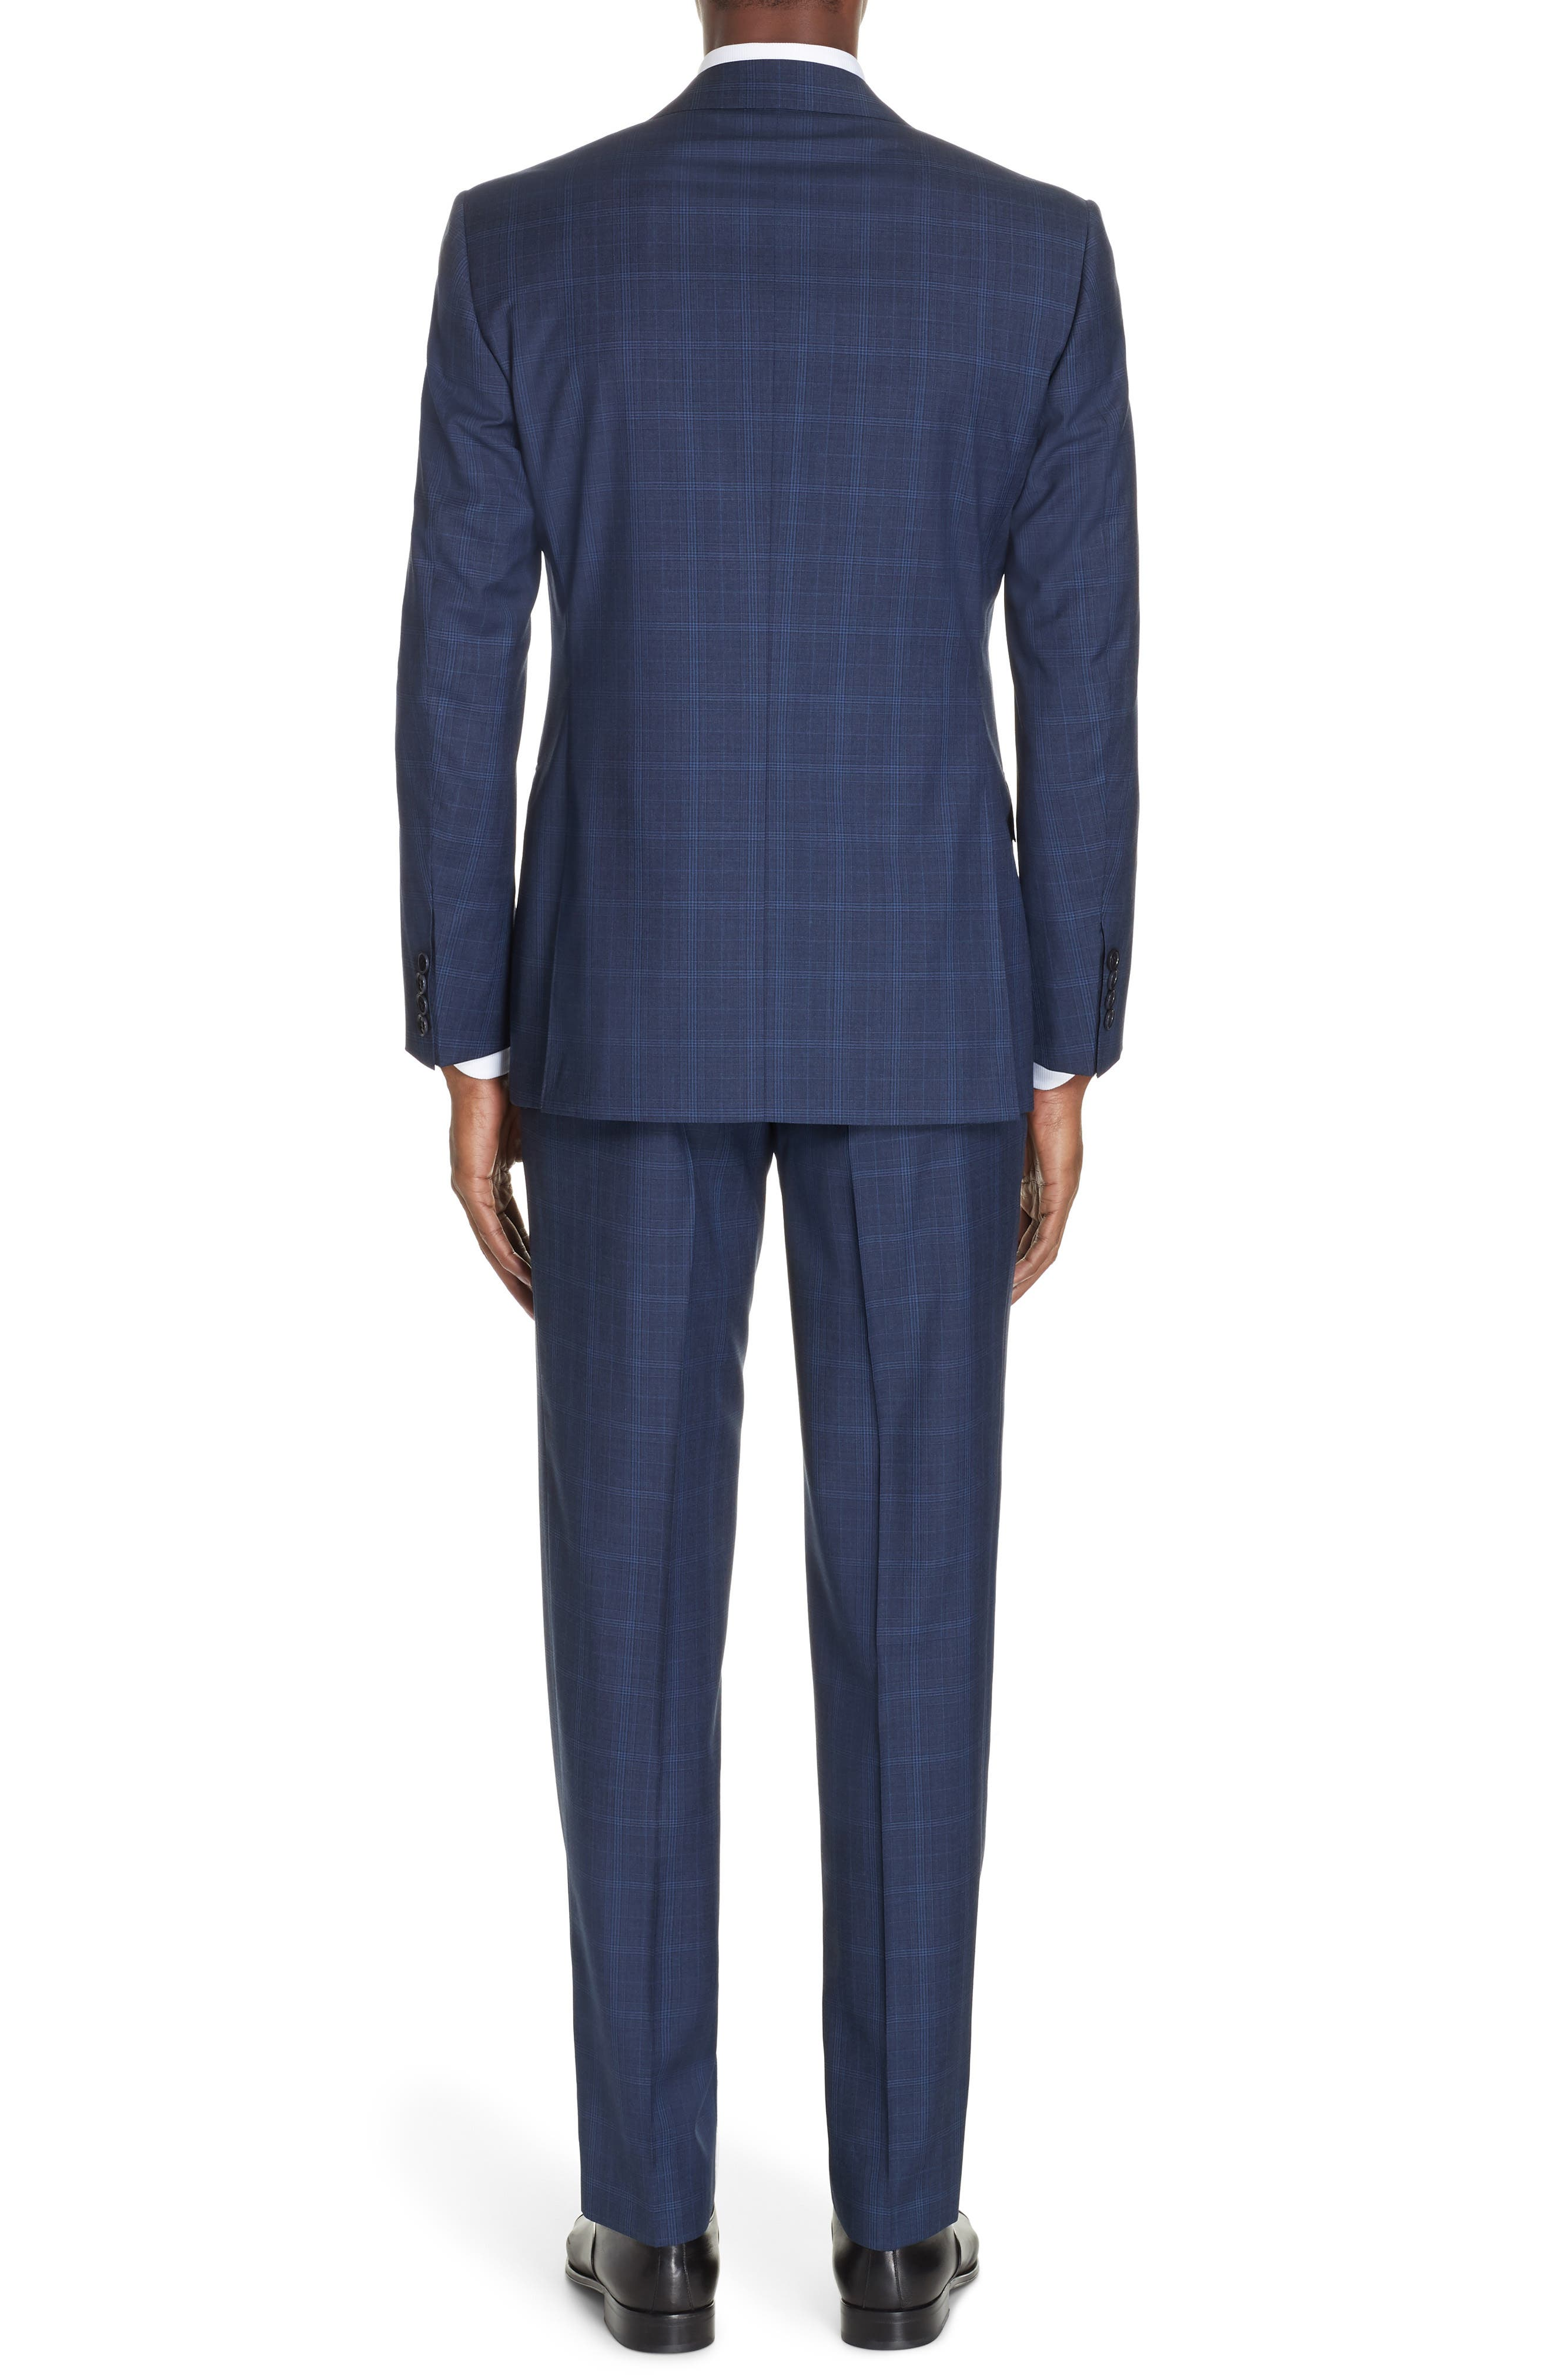 CANALI, Sienna Classic Fit Plaid Wool Suit, Alternate thumbnail 2, color, NAVY